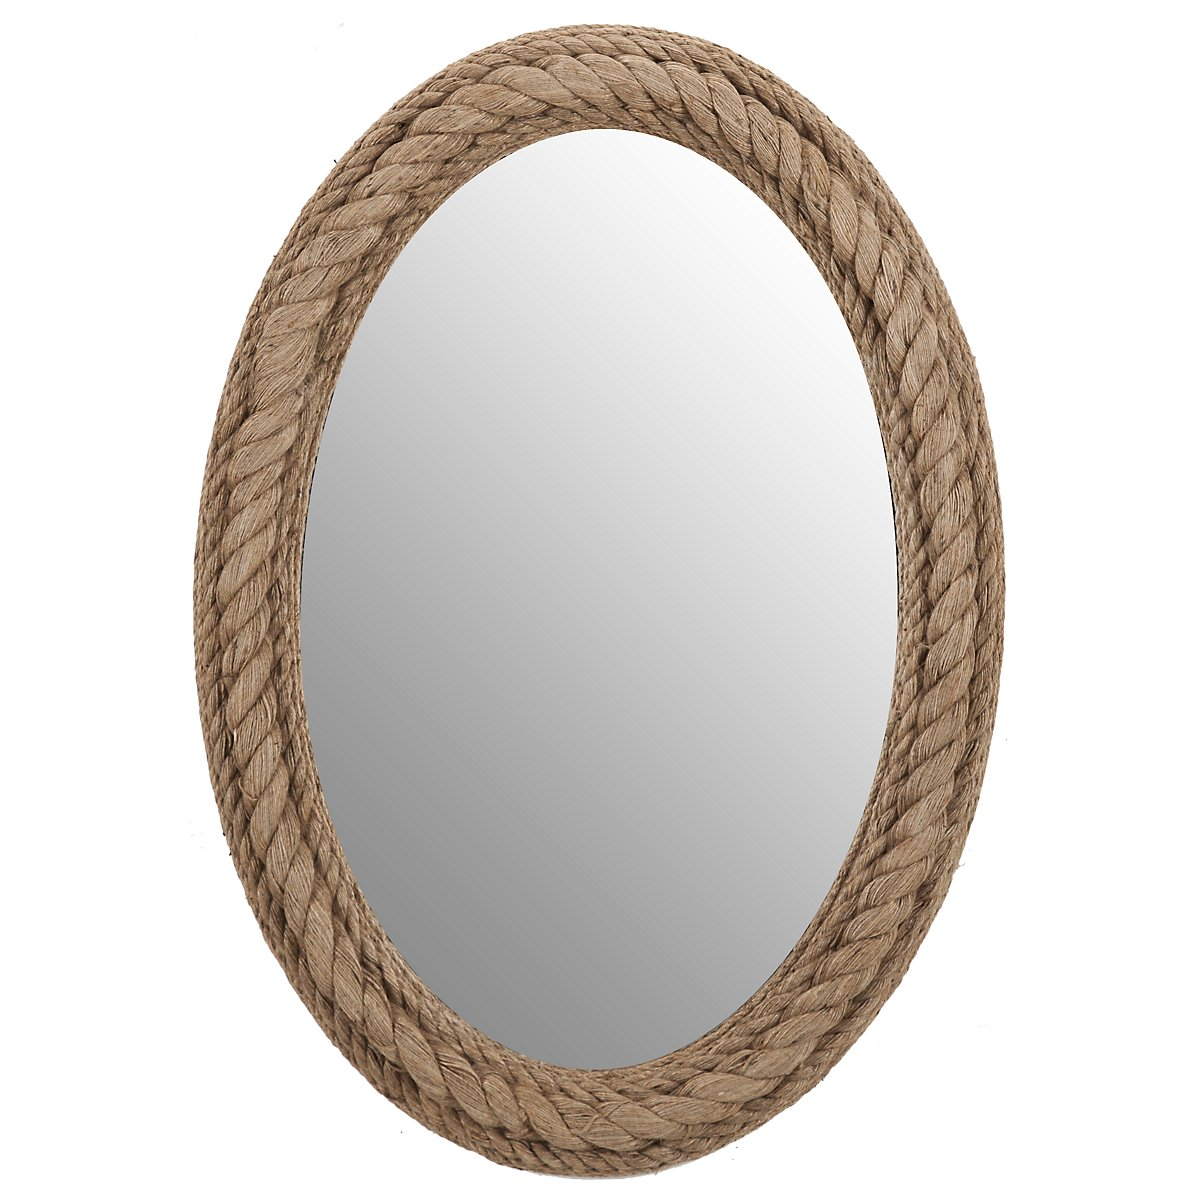 Well-known City Furniture: Rope Oval Mirror PA45